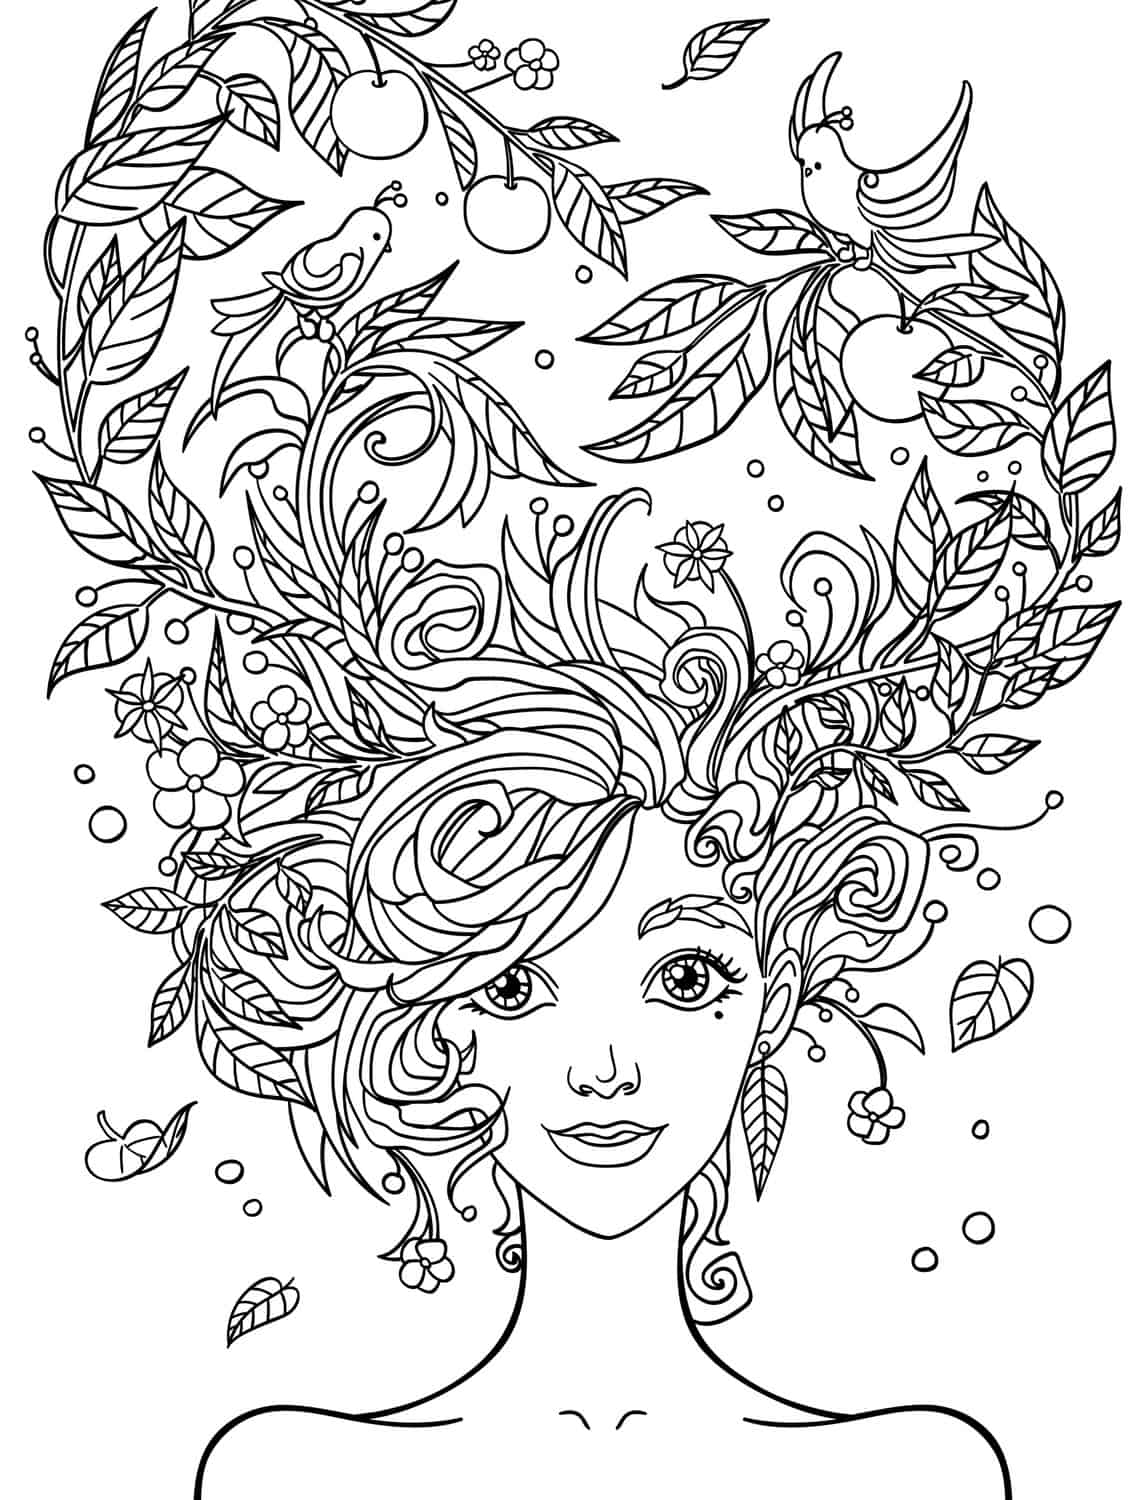 10 Crazy Hair Adult Coloring Pages Page 5 Of 12 Nerdy Coloring Pages For Adults Free